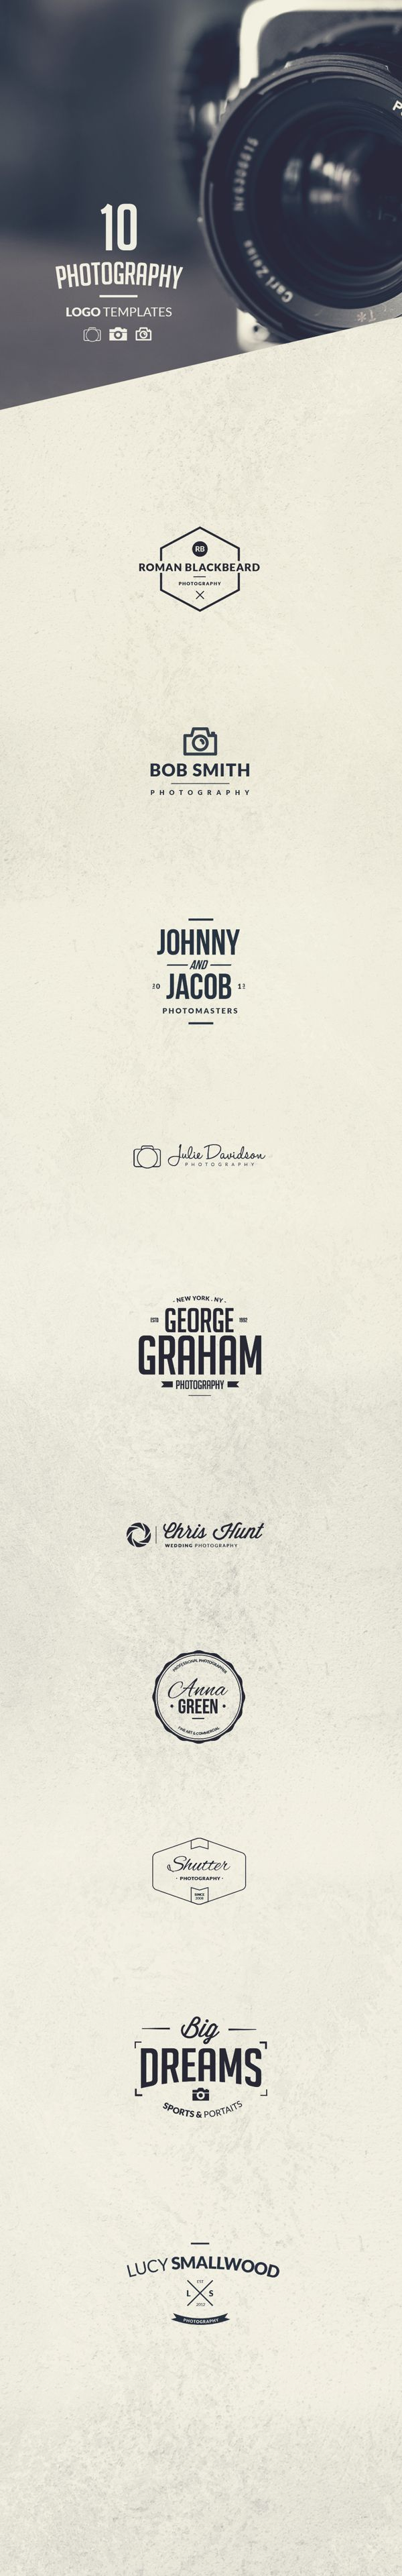 10 Photography Logo Templates by Tom Anders Watkins, via Behance